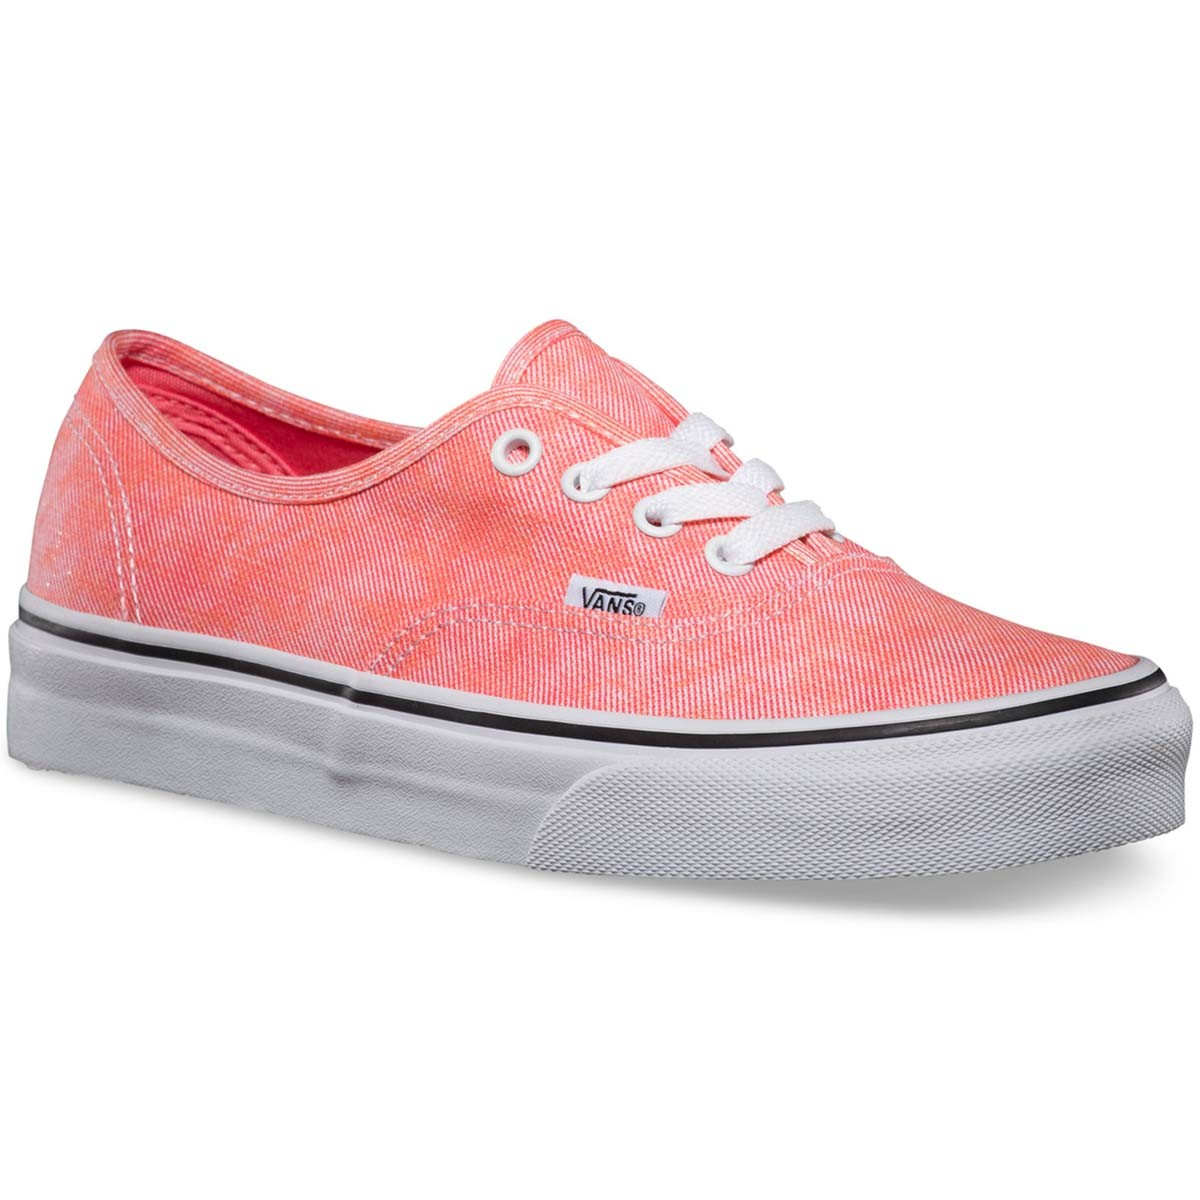 Vans Sparkle Authentic Womens Shoes - Coral 7.5